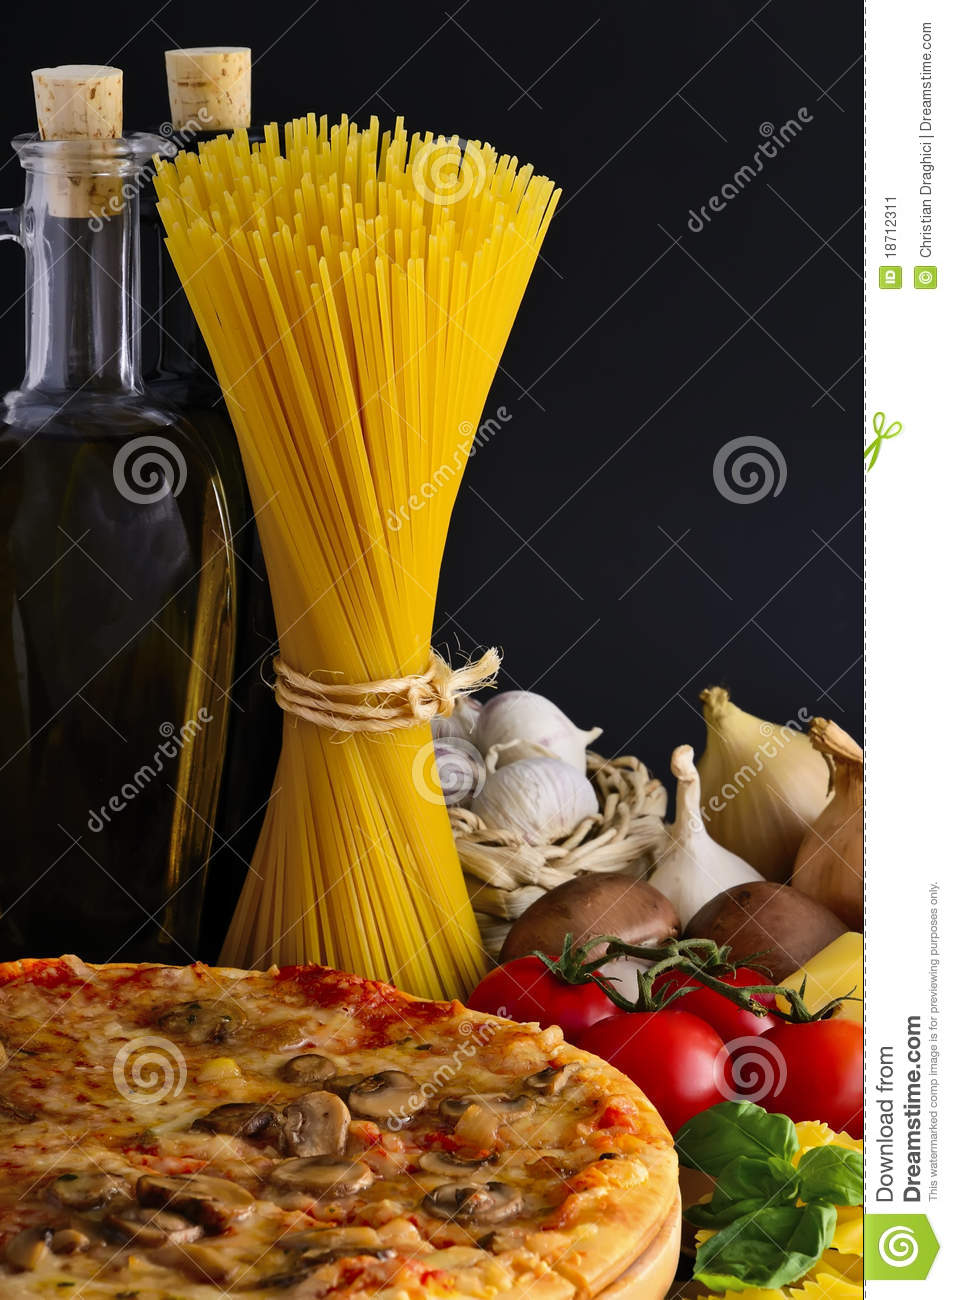 Pizza, pasta and ingredients